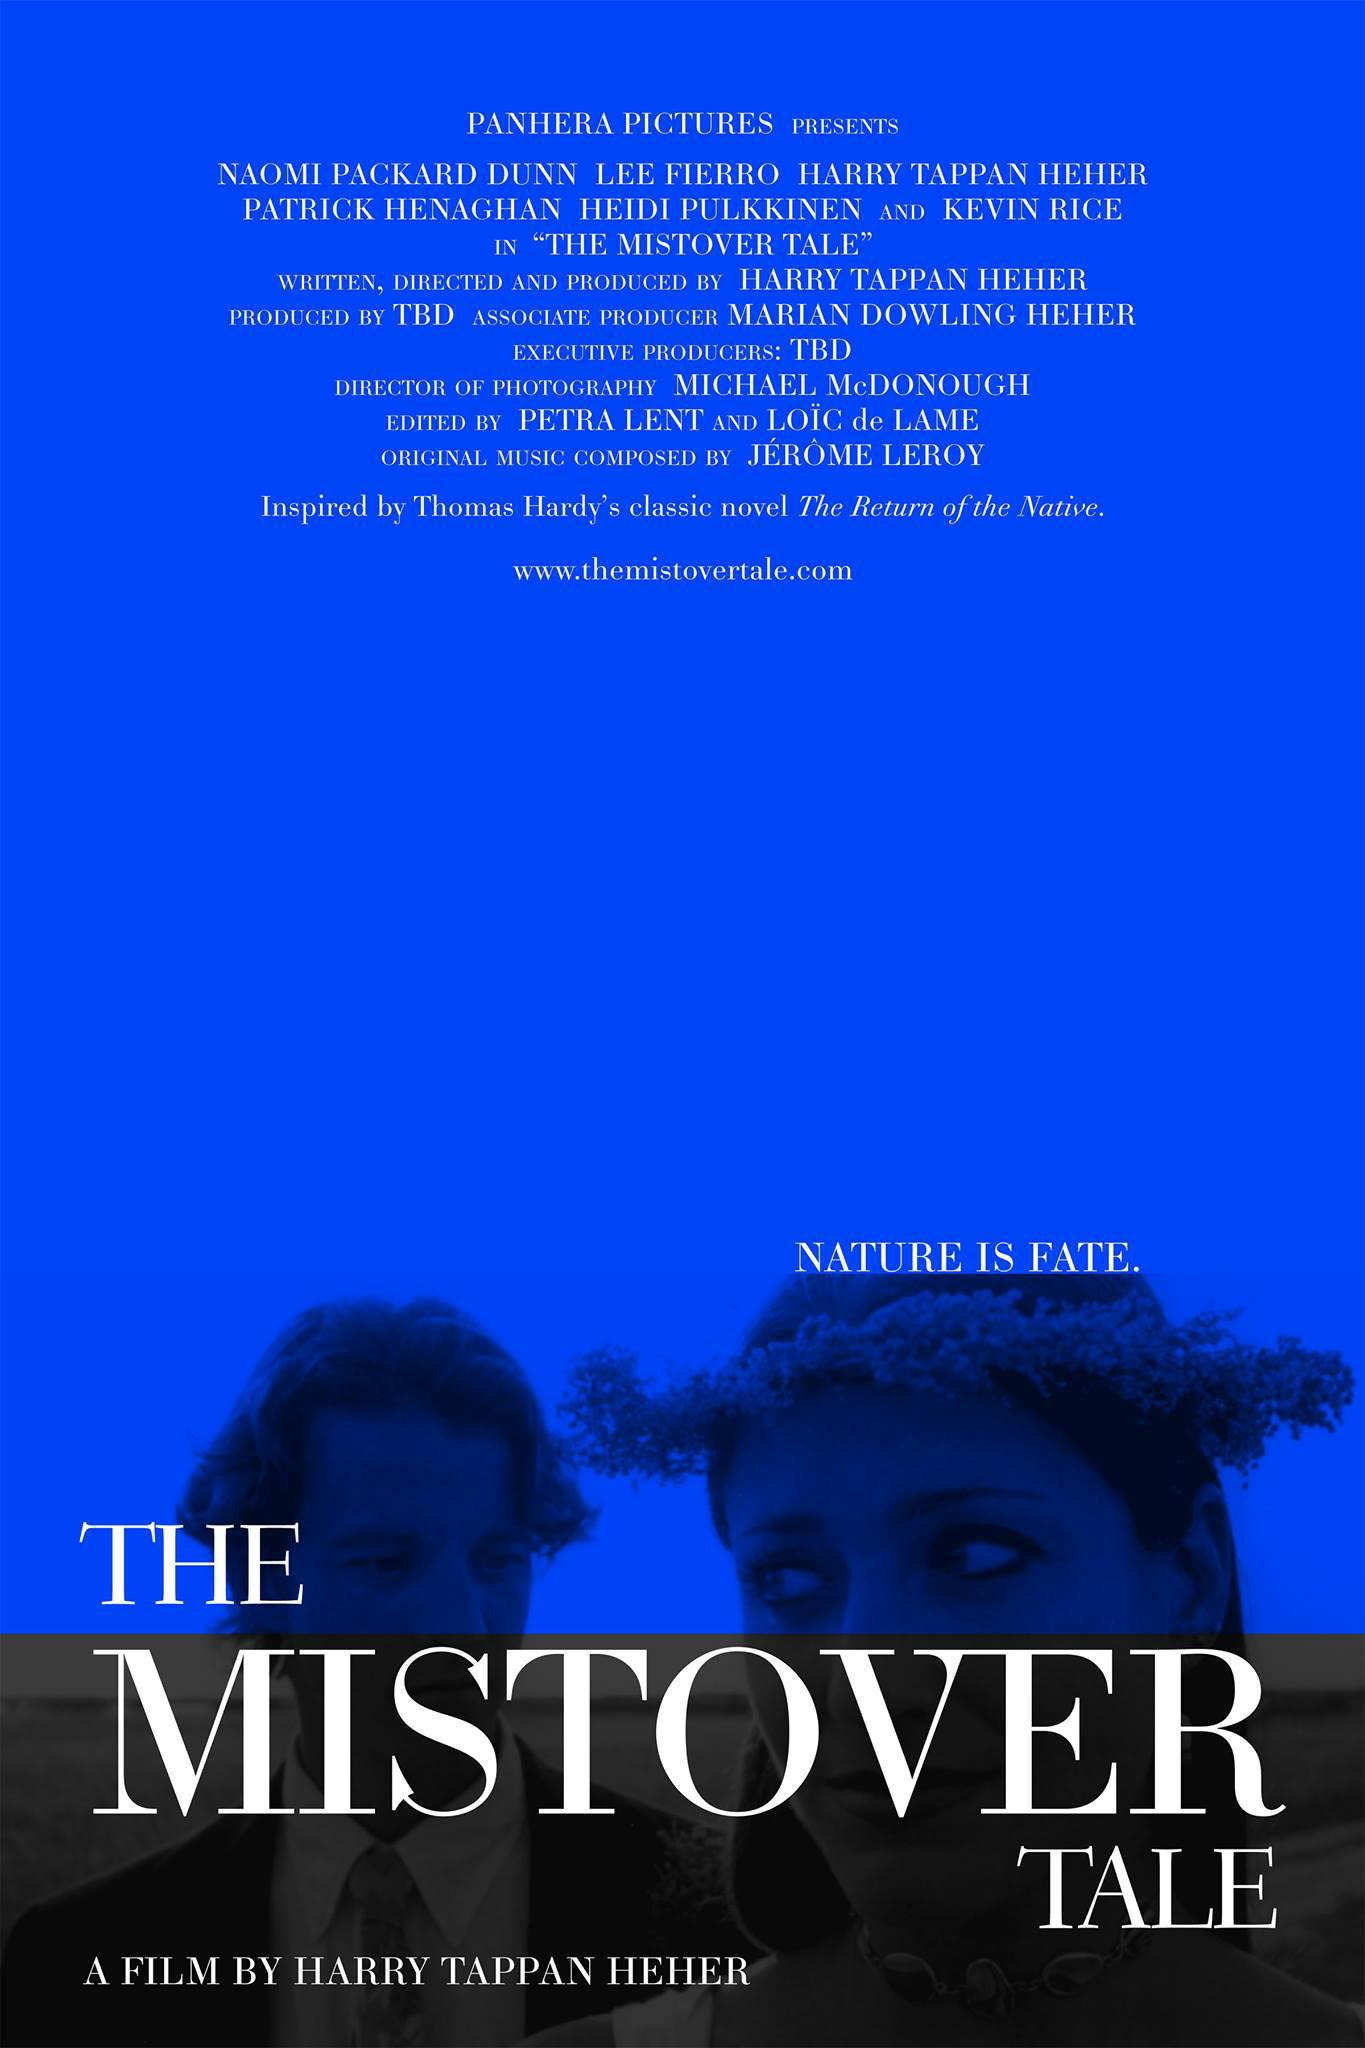 The Mistover Tale Movie Review English